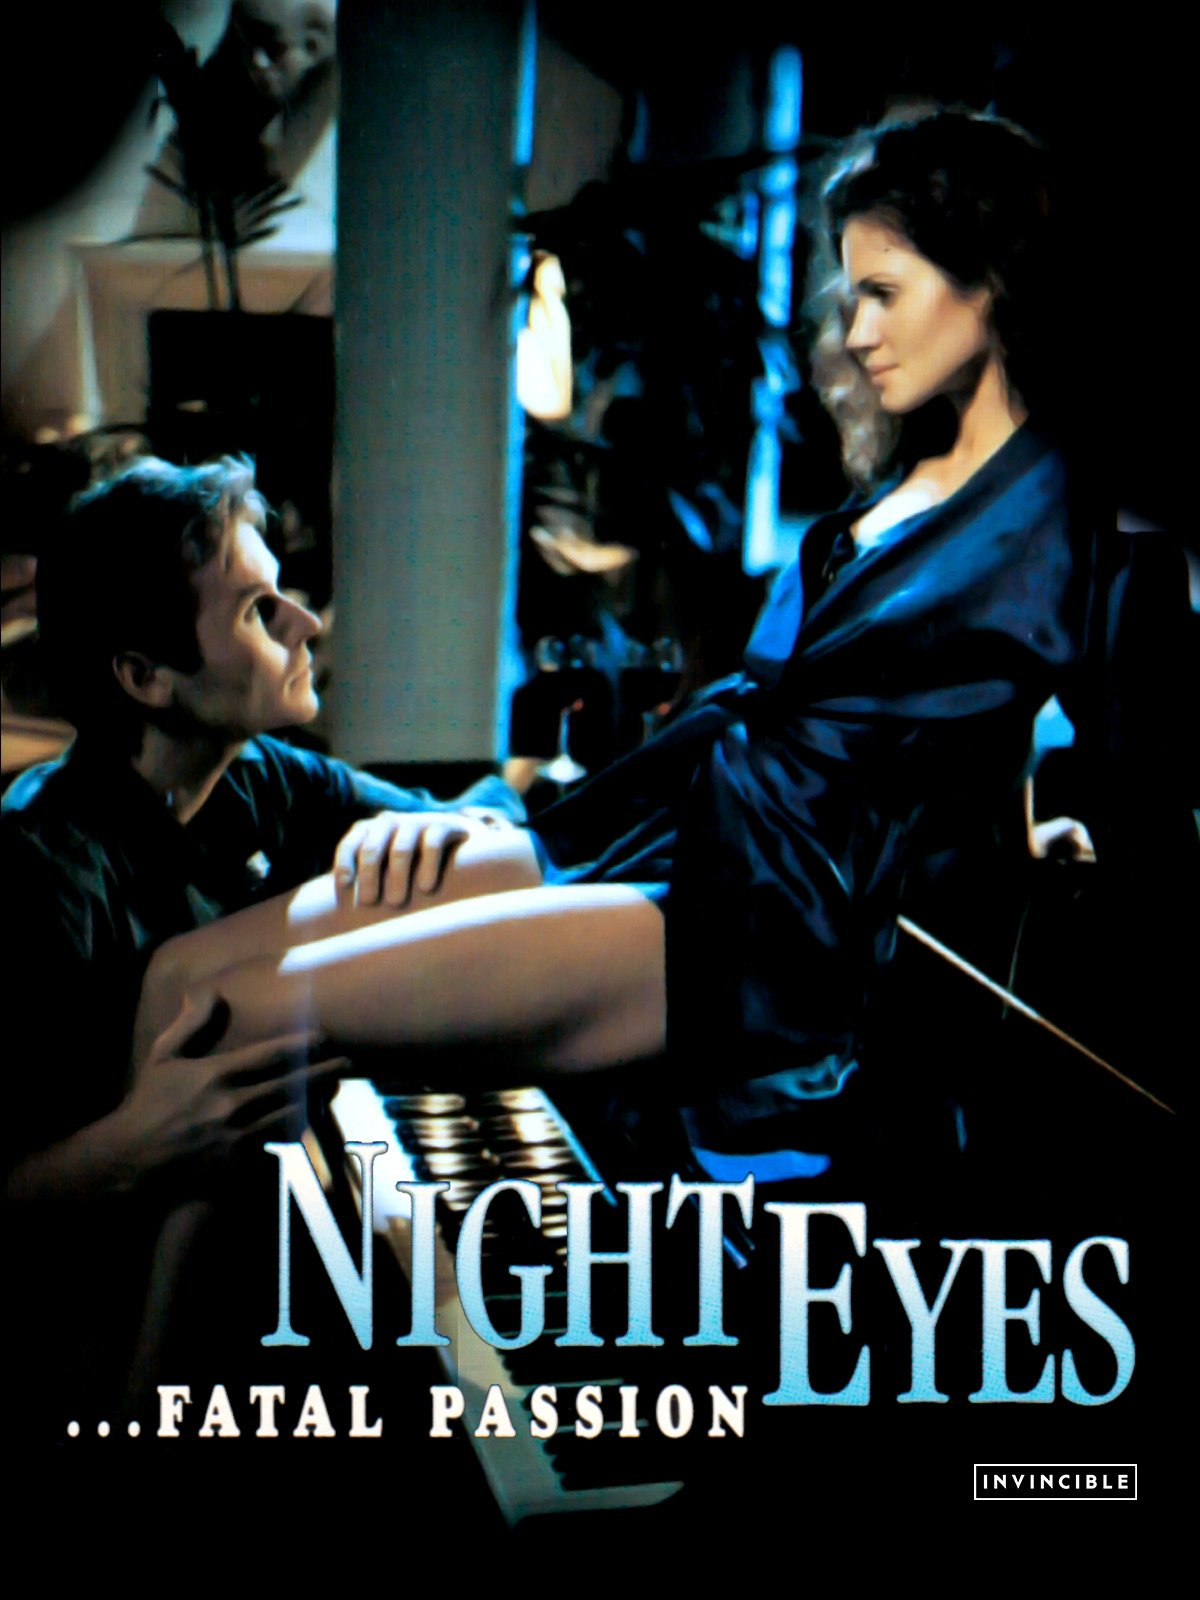 Night Eyes Fatal Passion